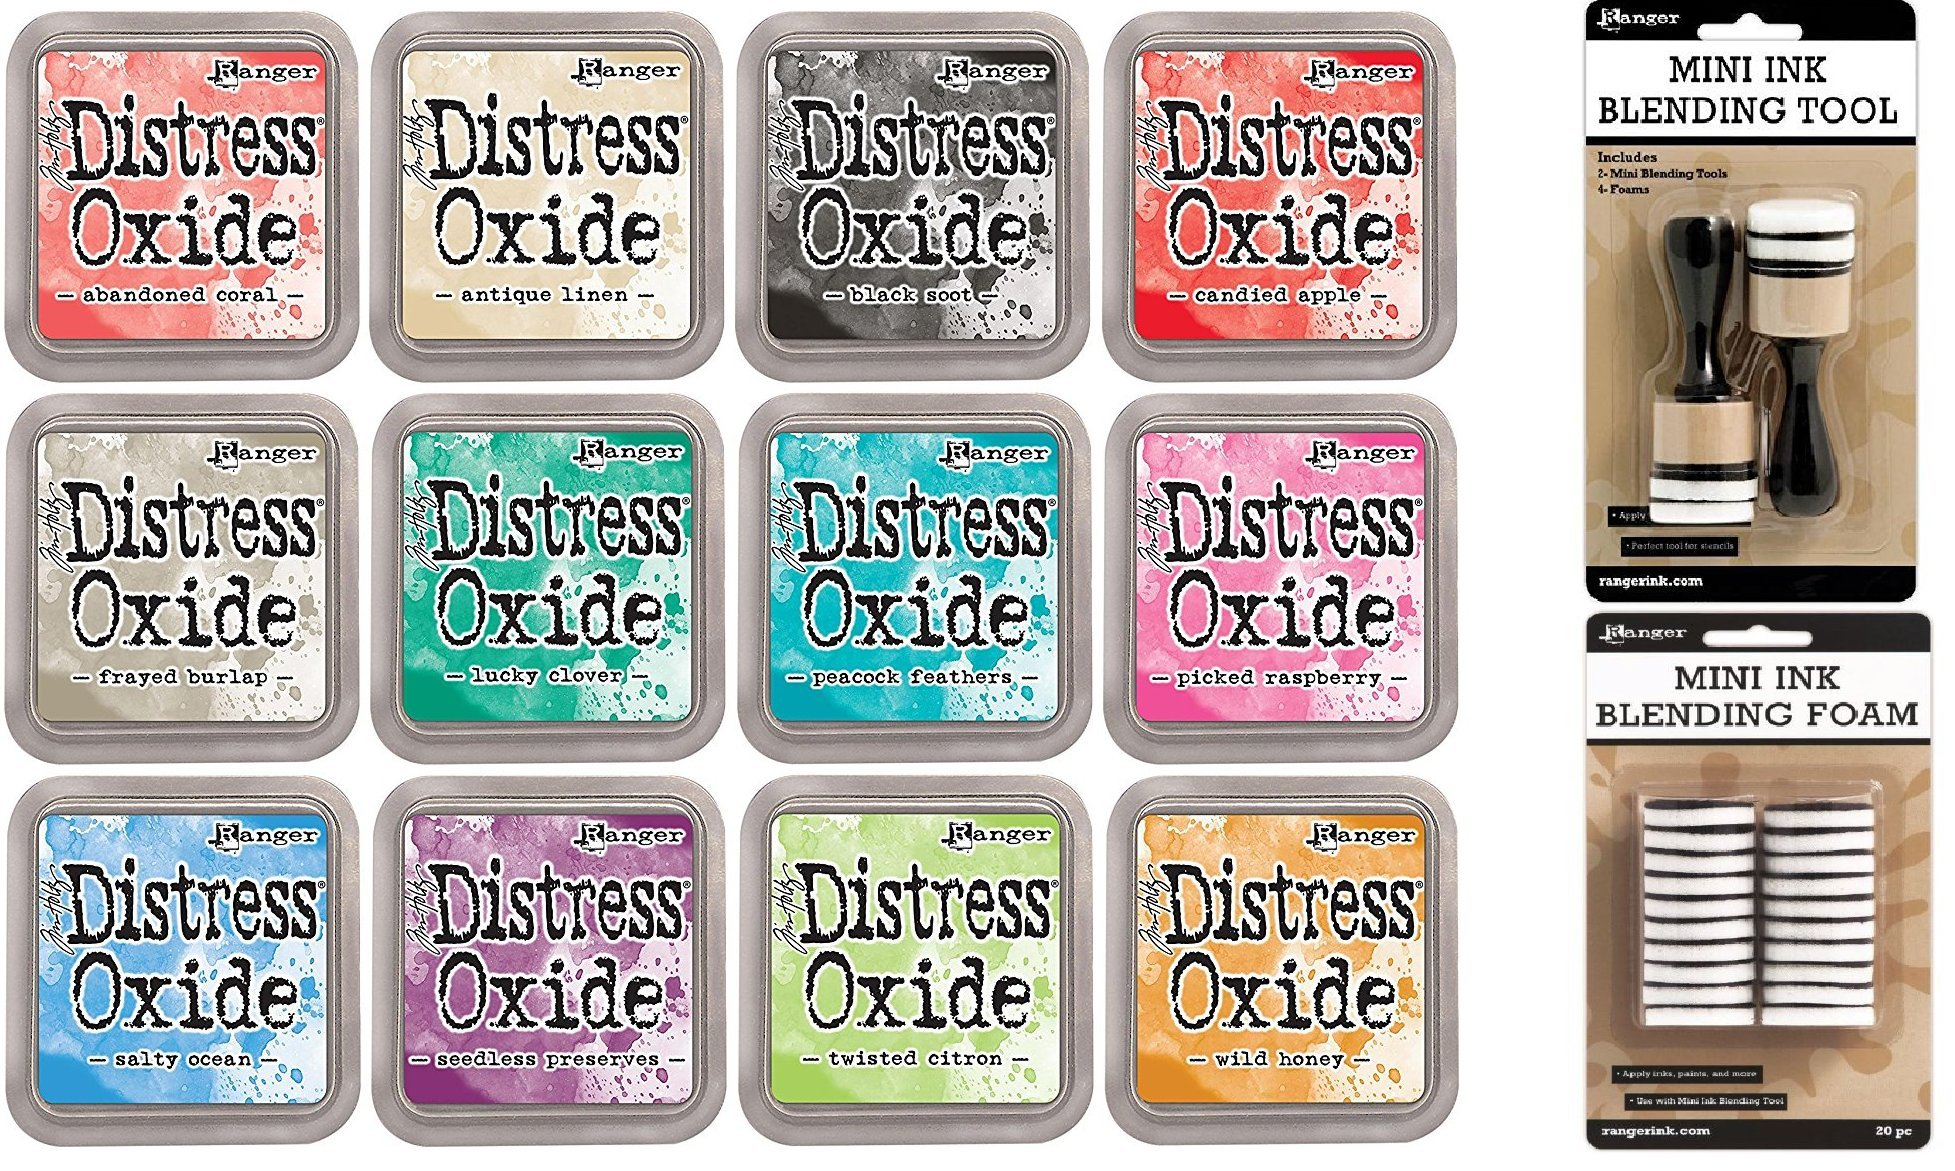 Tim Holtz Distress Oxide Ink Pads Set of 12 and Mini Ink Blending Tools Round with Replacement Foams